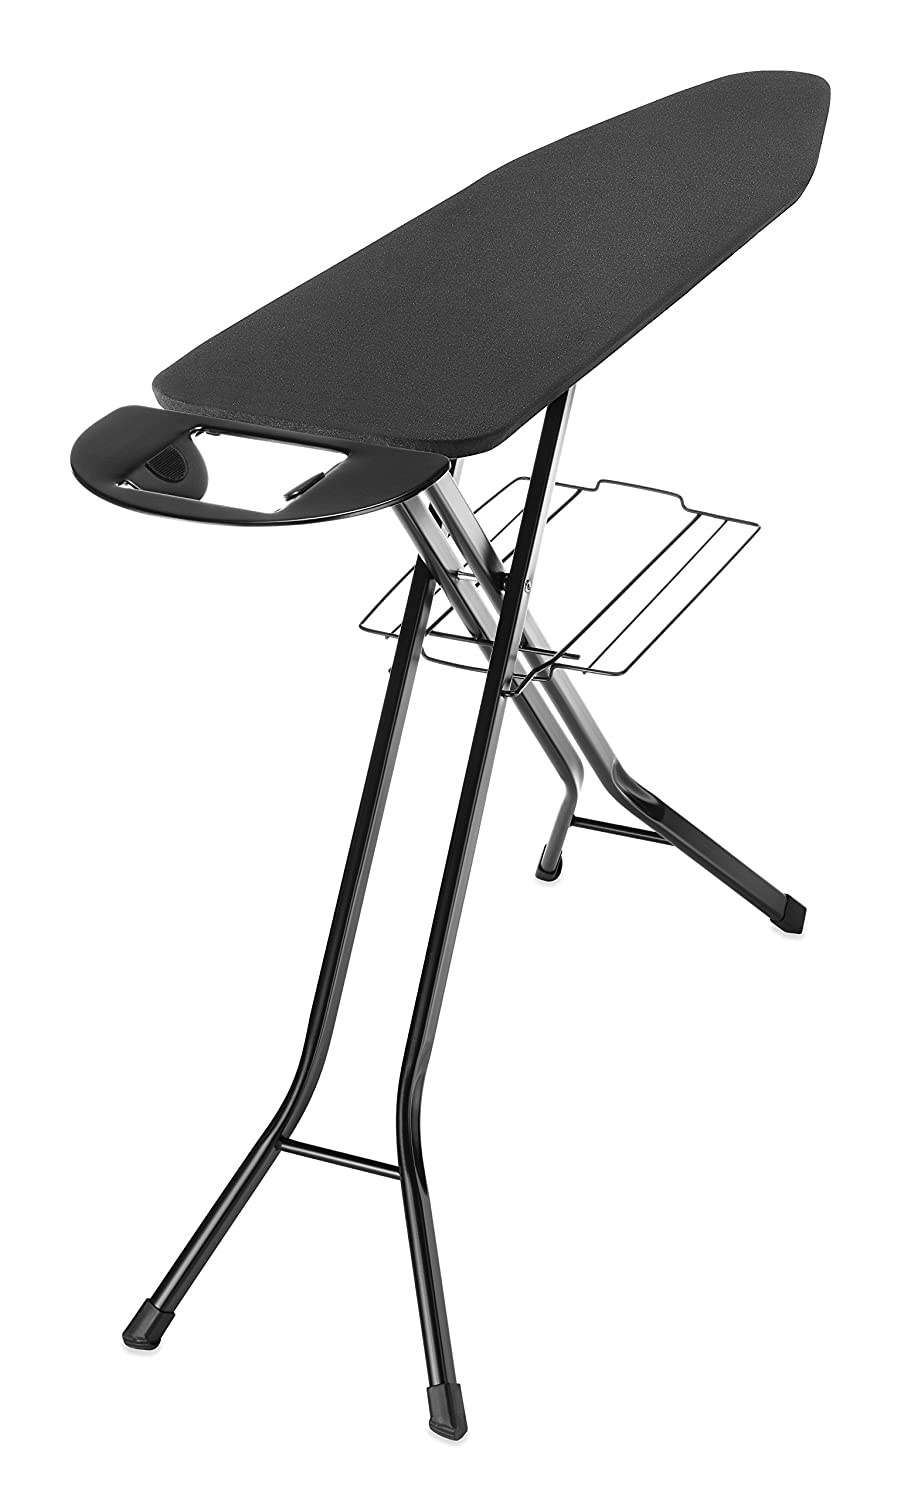 Whitmor Deluxe 4-Leg Ironing Board w/Mesh Top and Iron Rest Black 6152-6879